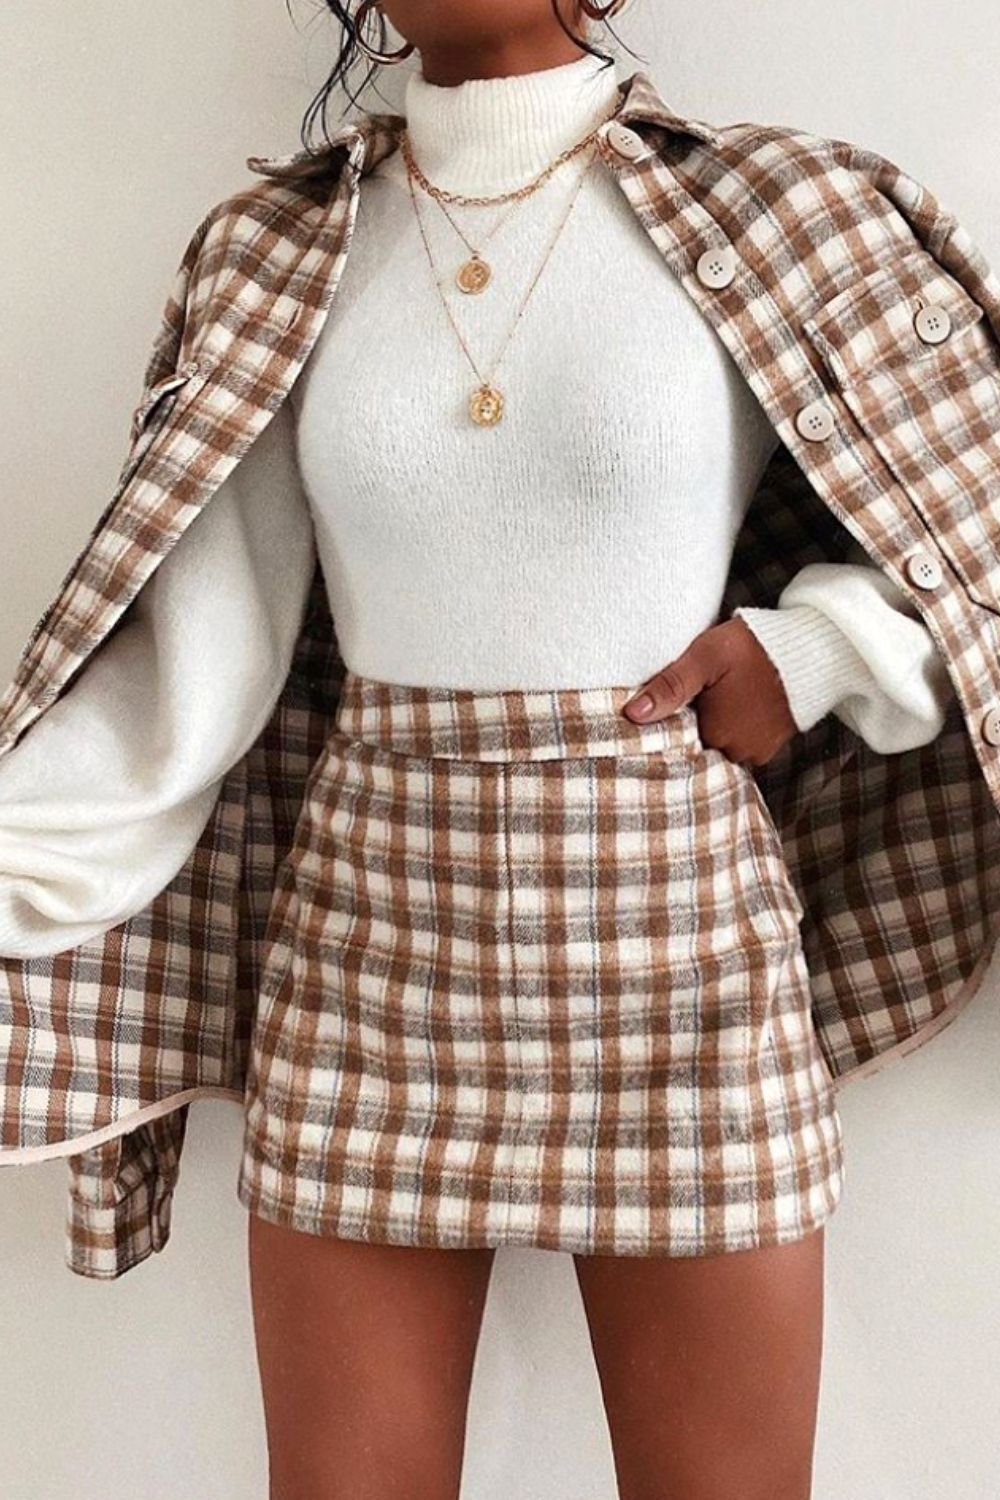 10 Key Fashion Trends for Winter 2020/2021